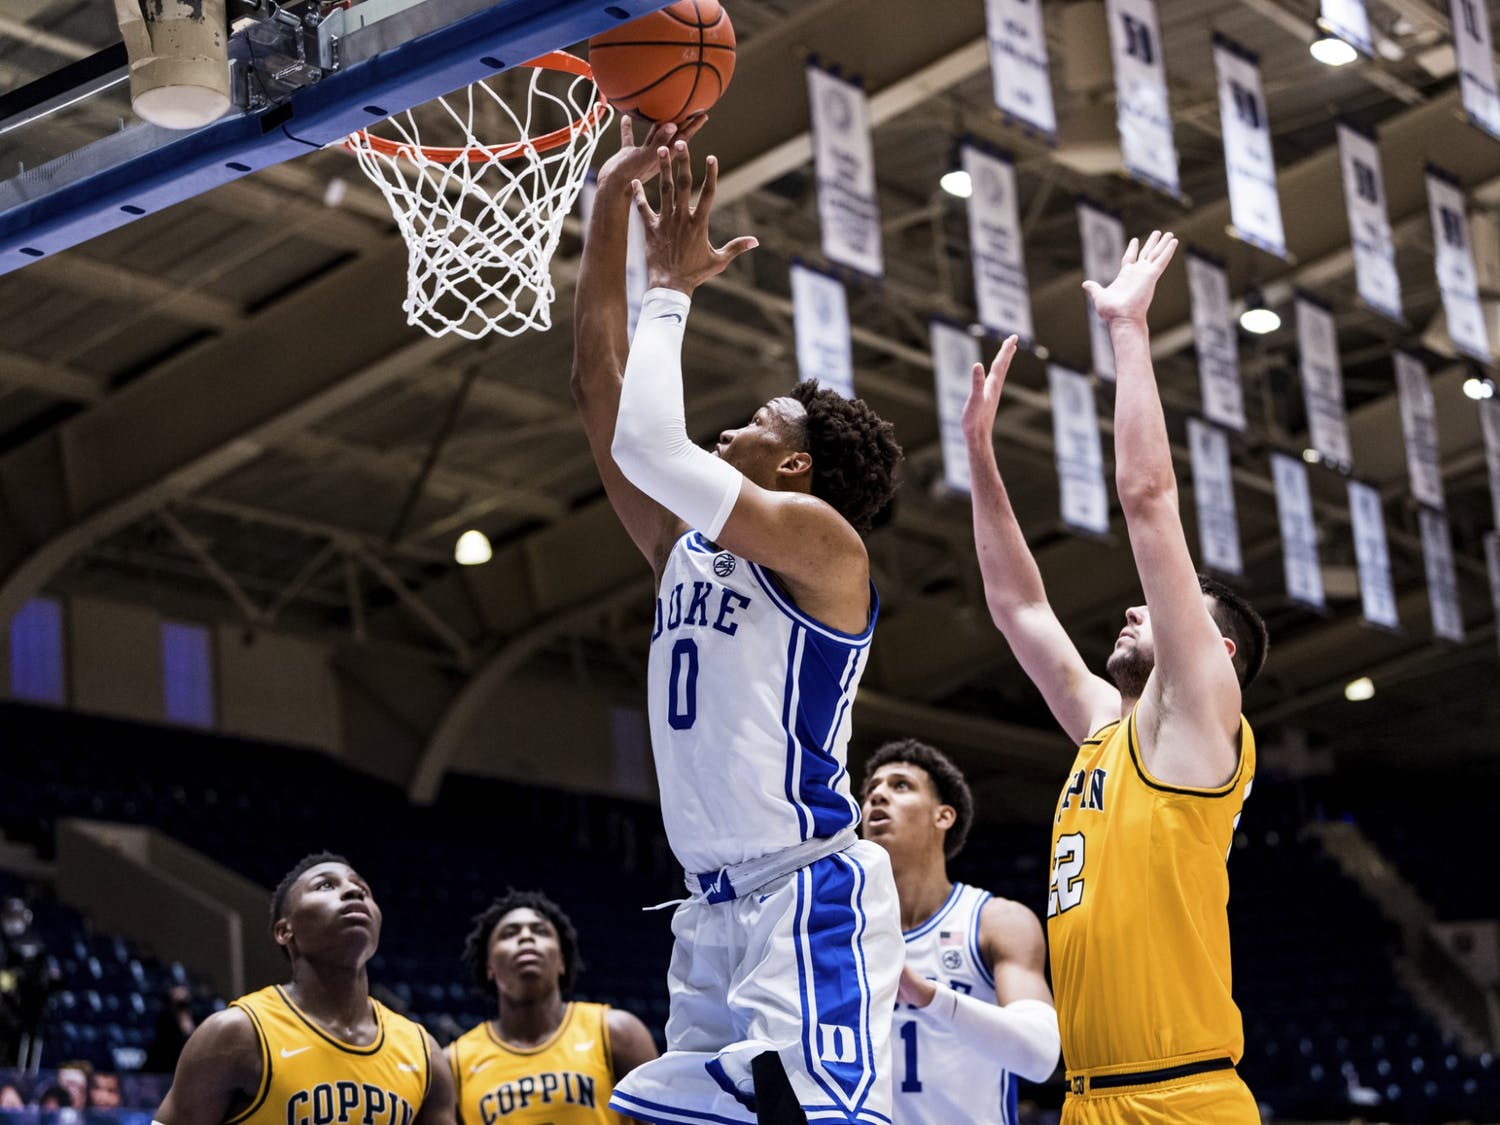 After topping Coppin State on Saturday, Duke finds itself as the highest-ranked ACC team.